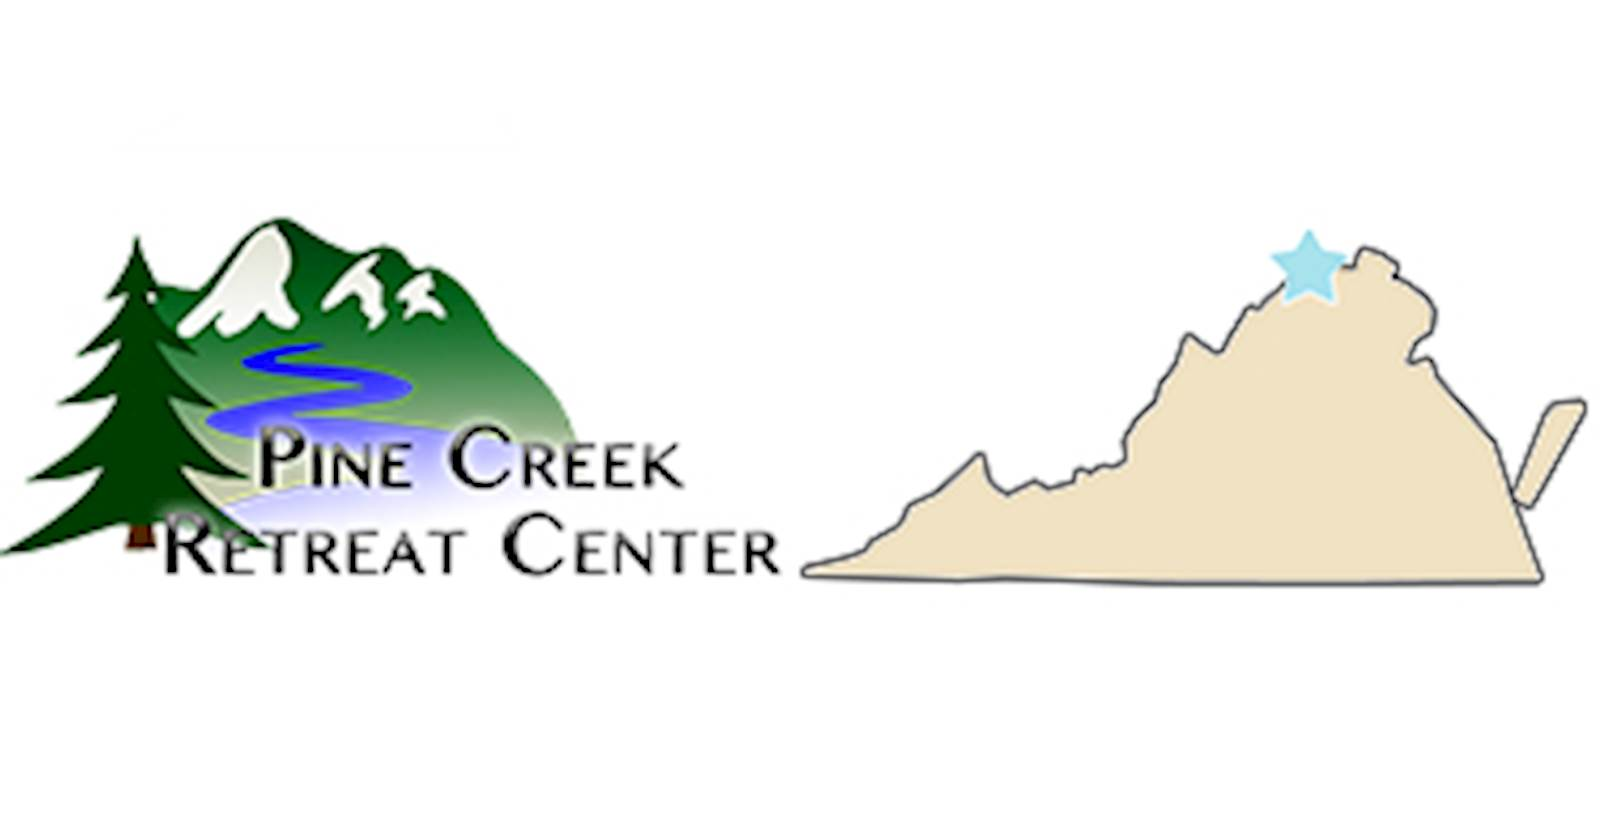 Pine Creek – Appalachian Mountain Retreat Center - logo and link